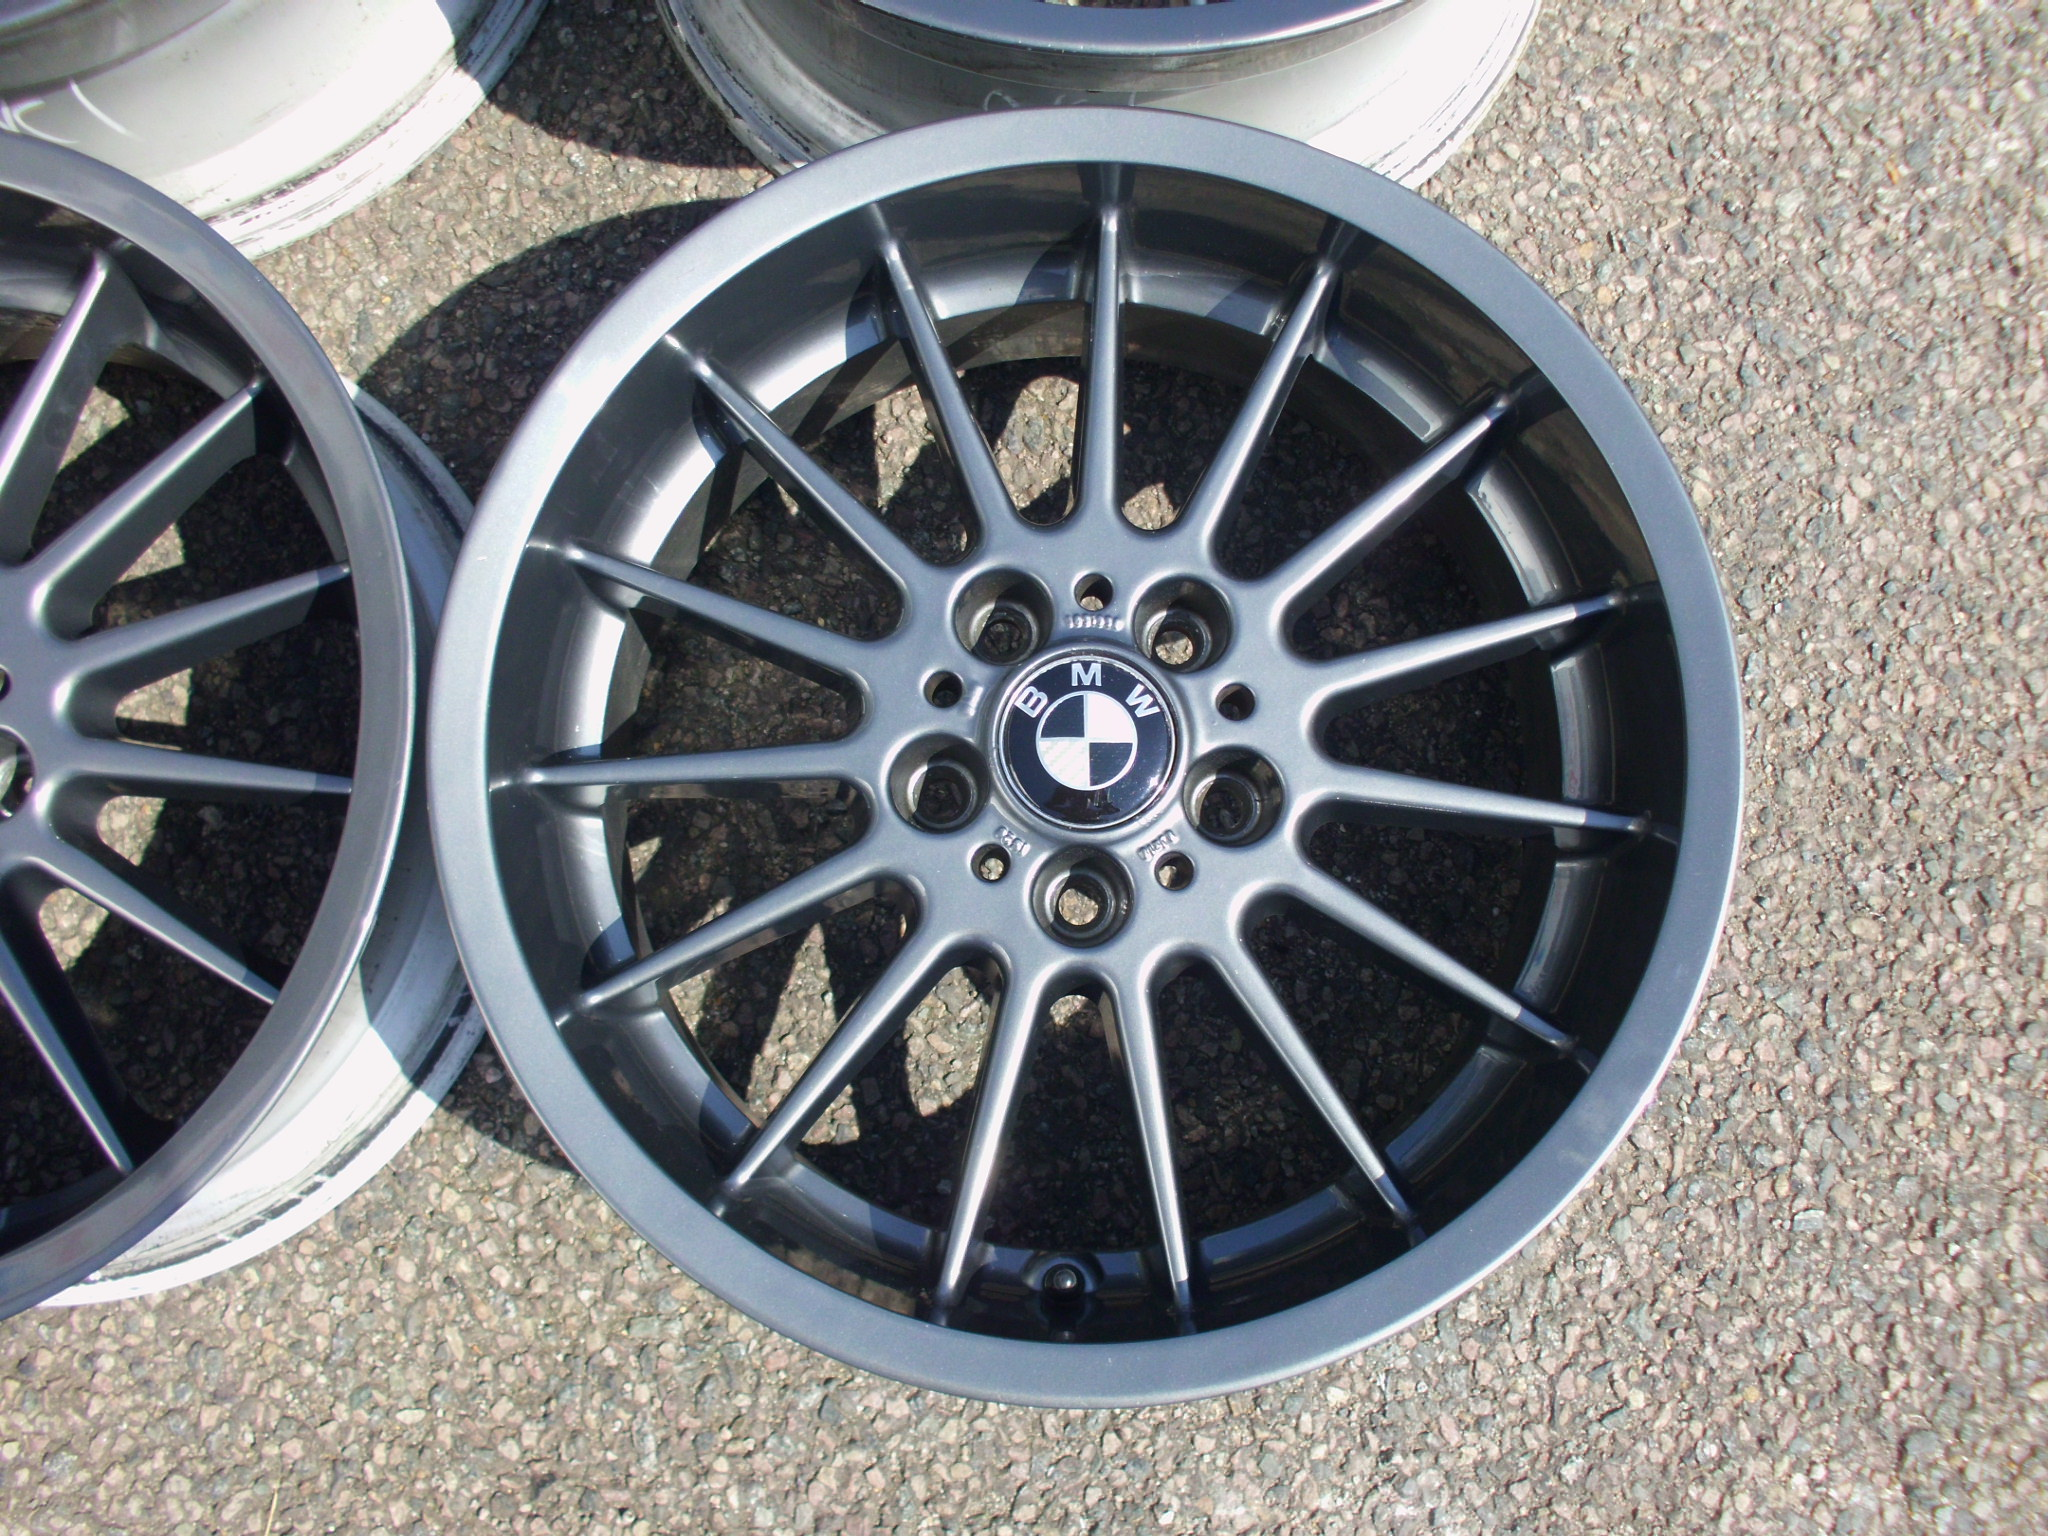 "USED 18"" GENUINE BMW STYLE 32 RADIAL DEEP DISH E38 ALLOYS, WIDE REARS, FACES RECENTLY PAINTED IN GUNMETAL"